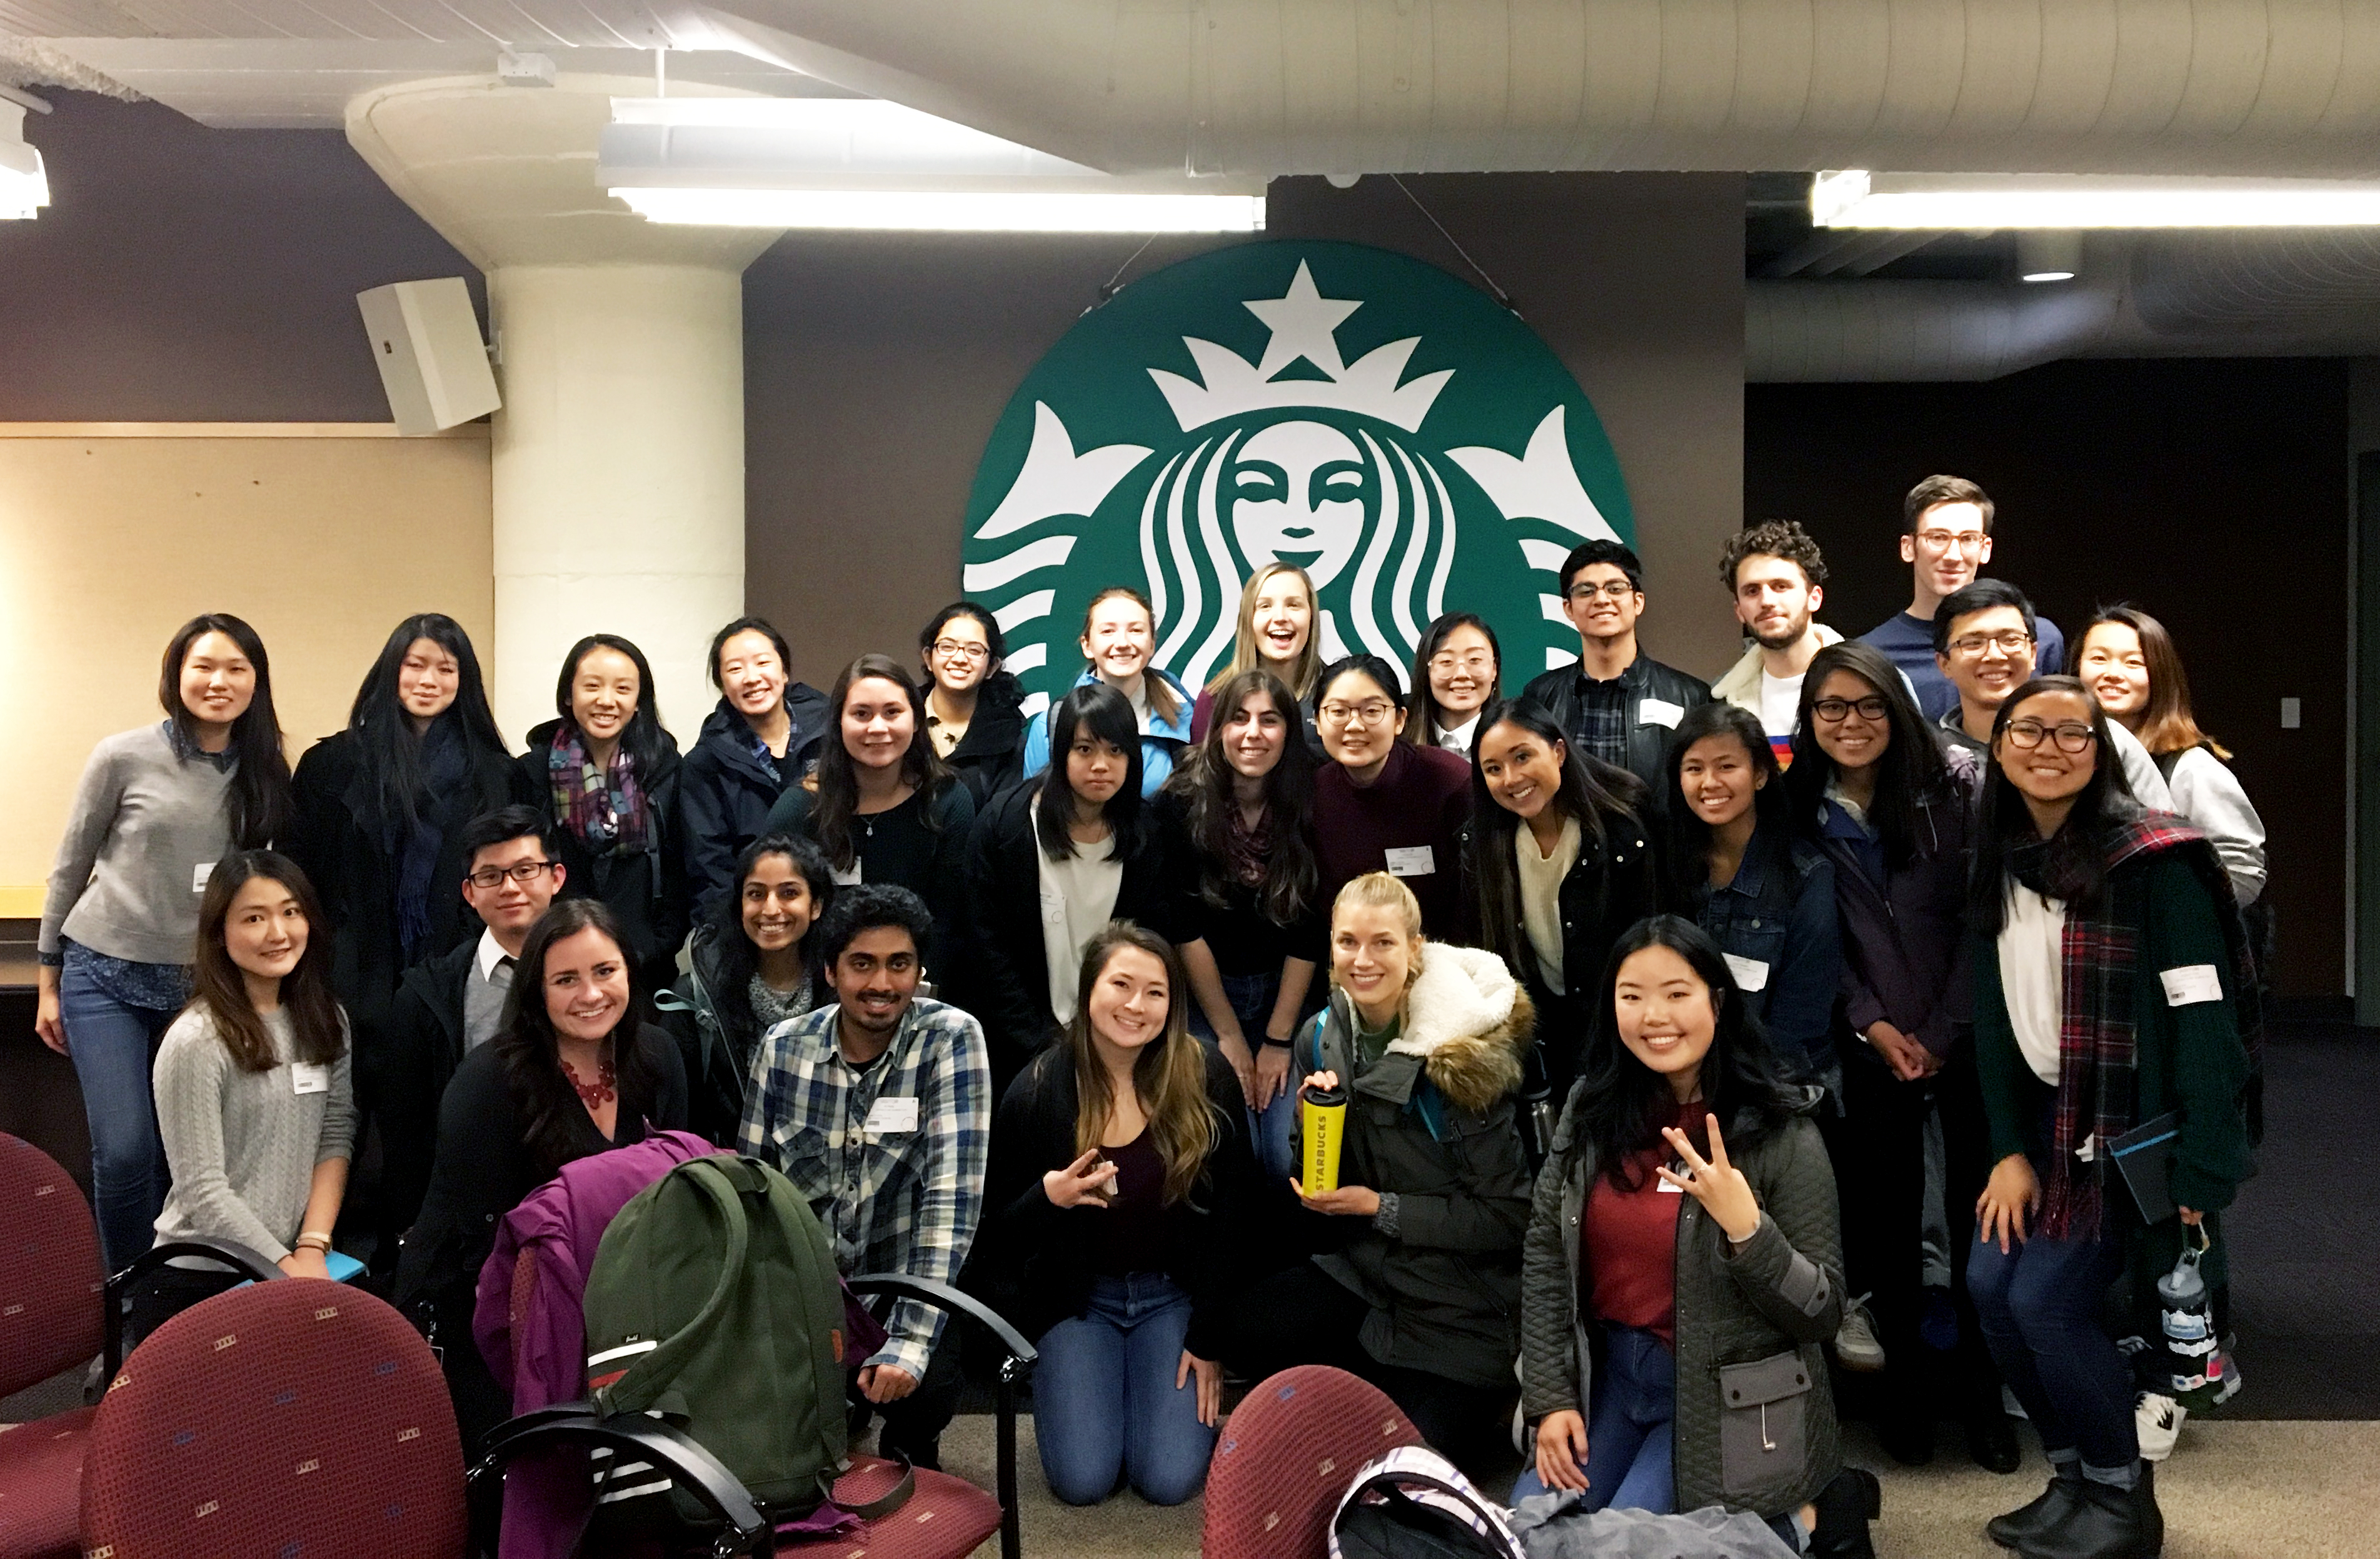 starbucks company tour